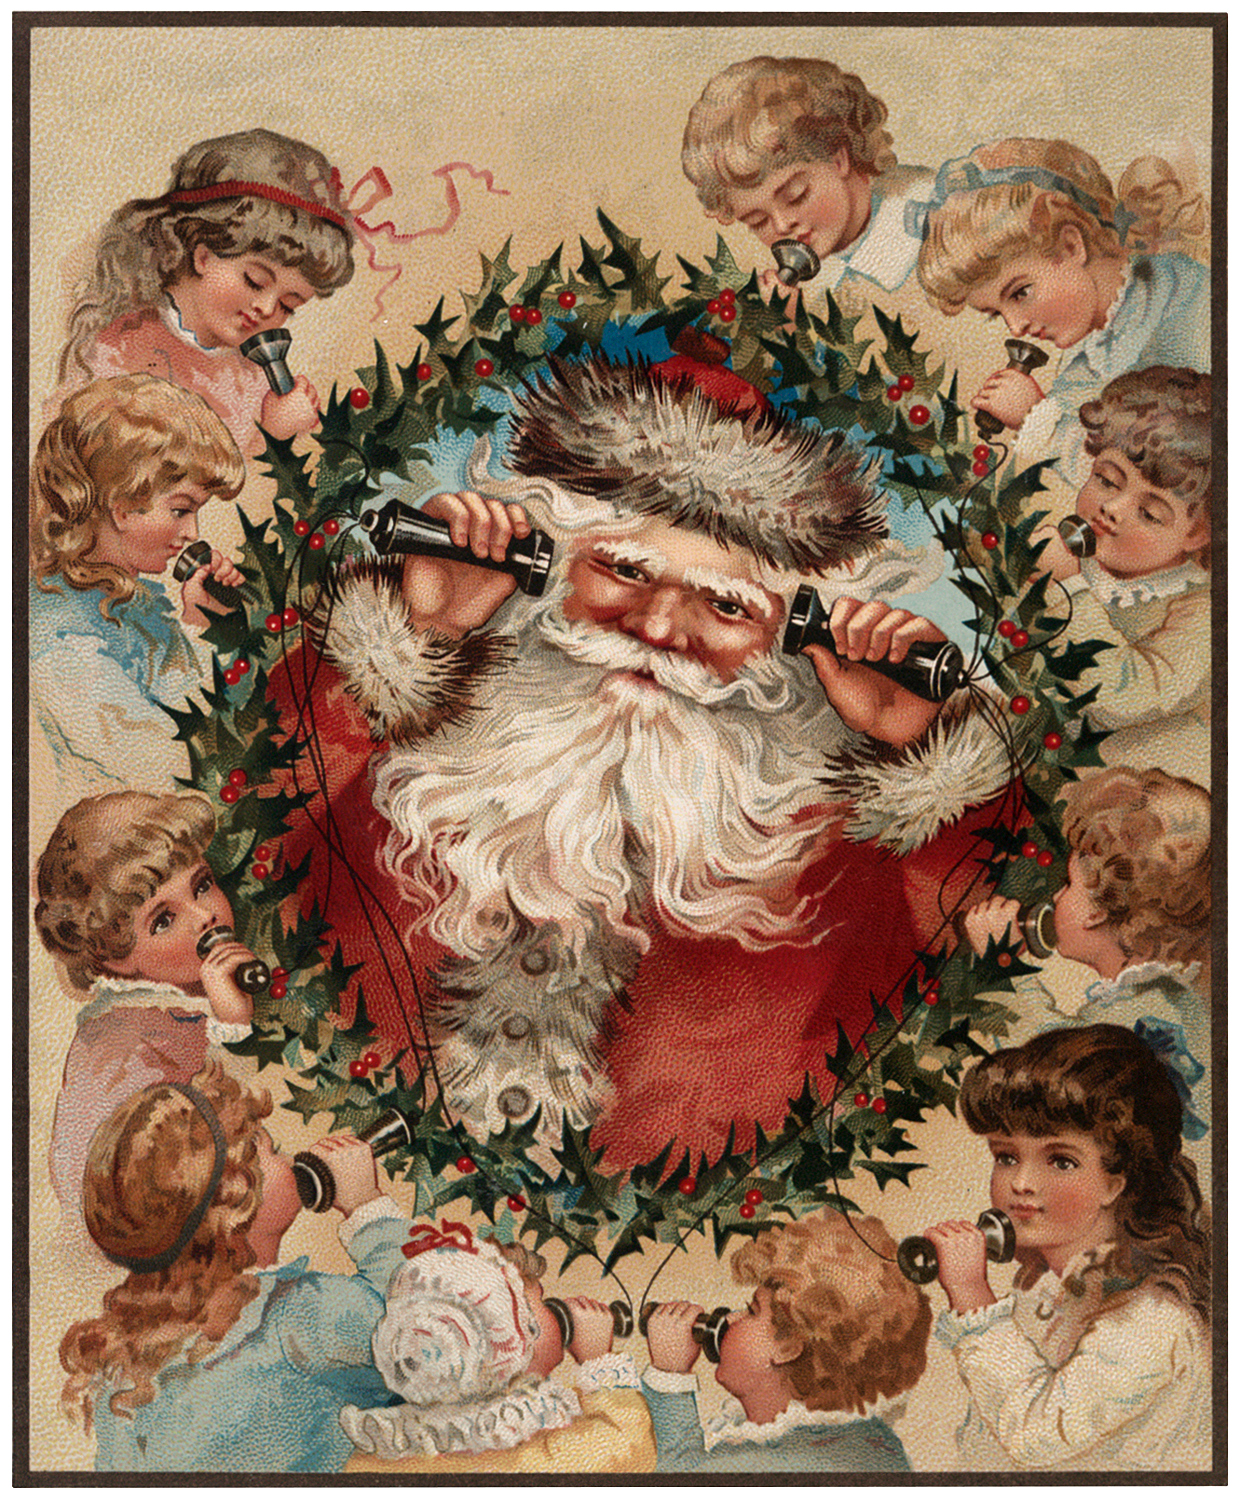 Vintage Santa with Kids Image